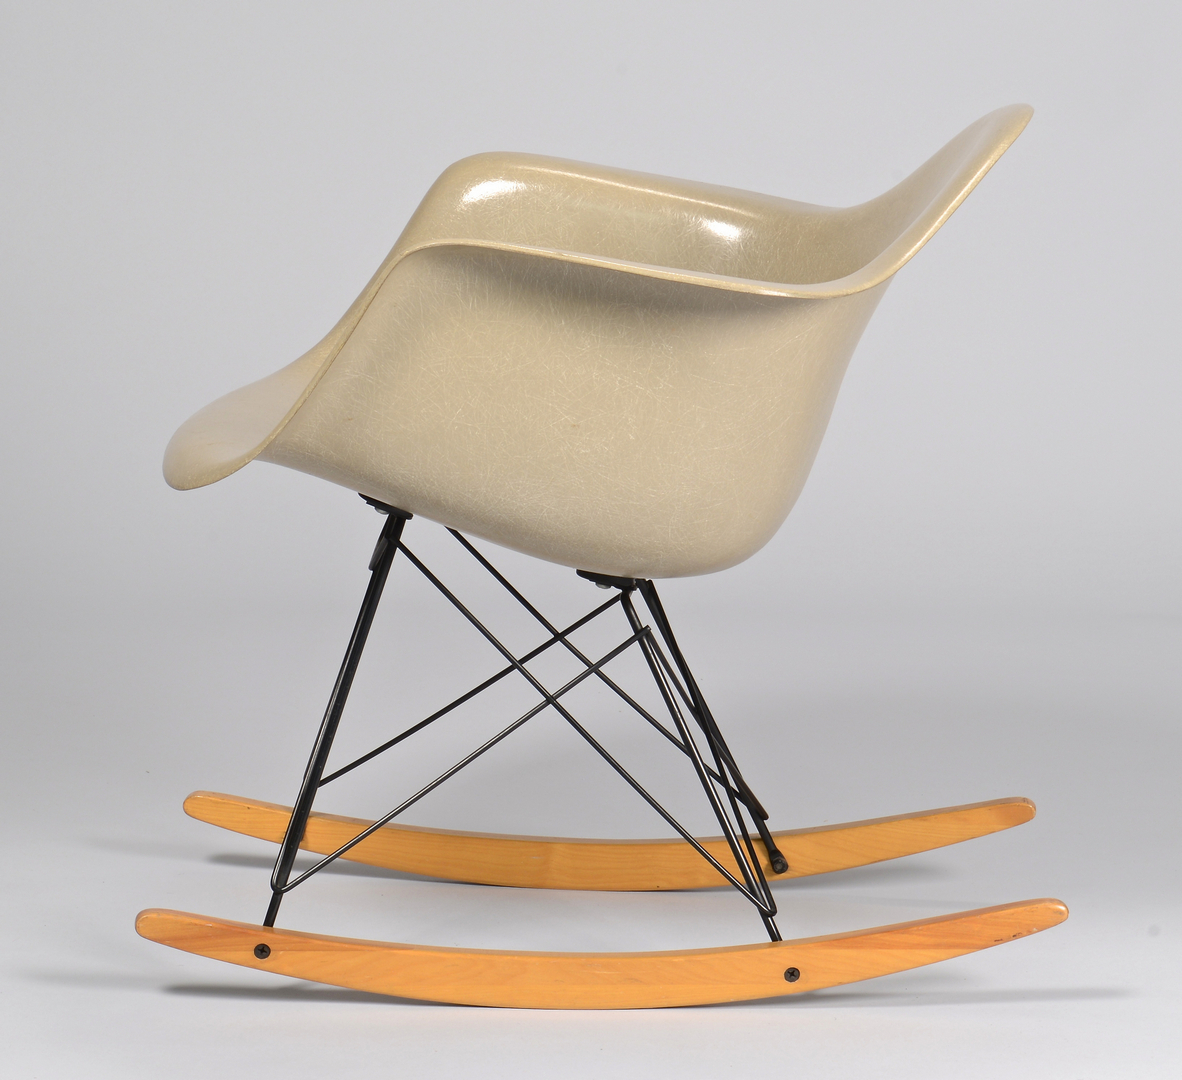 Lot 452 3 eames for herman miller chairs including rocker - Herman miller bucket chair ...